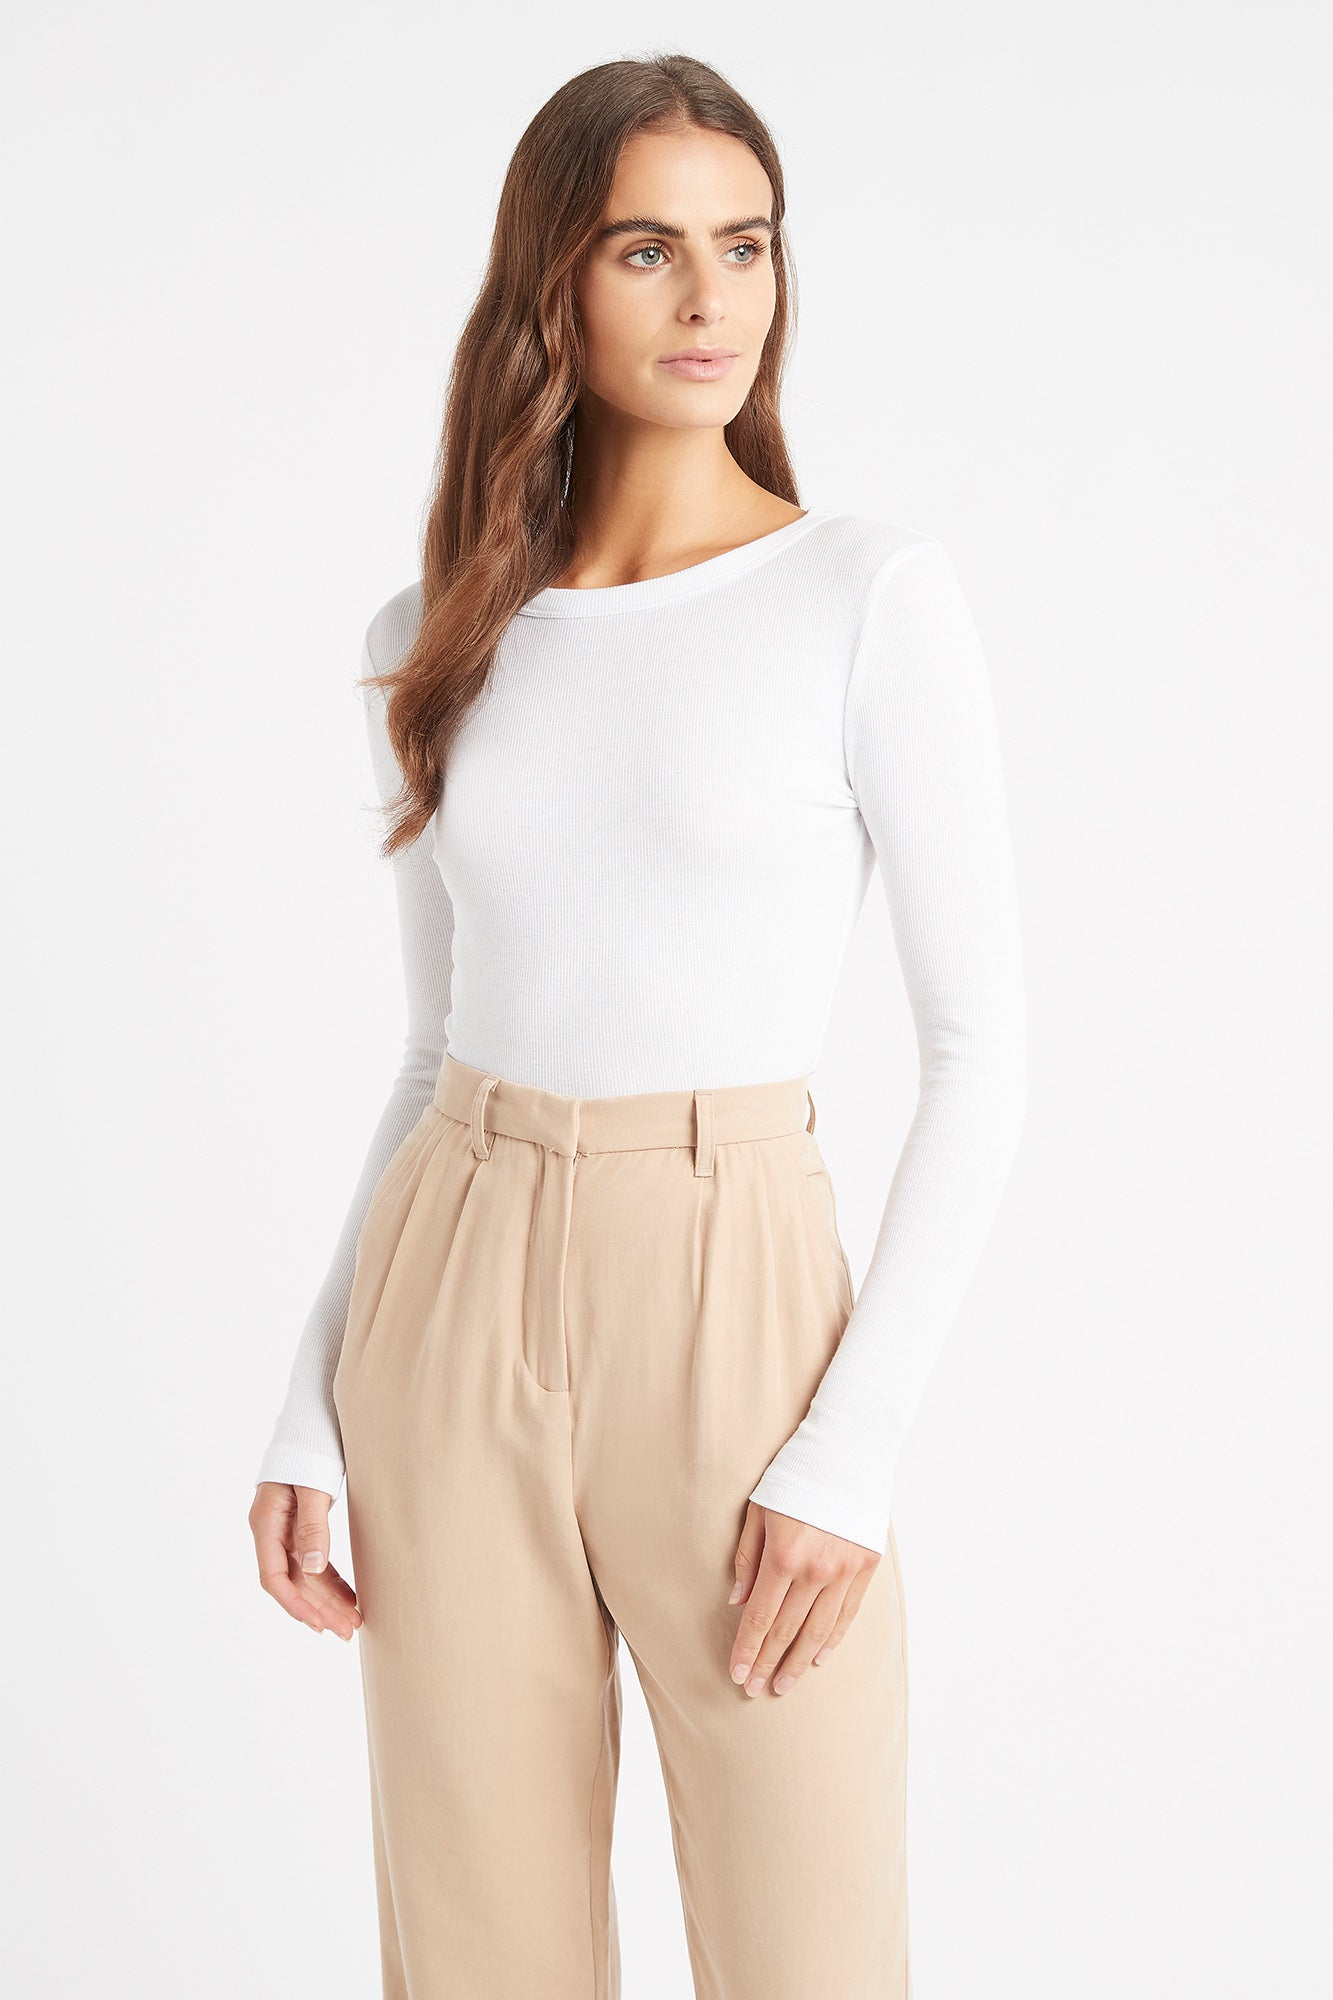 Camile Long Sleeve Top